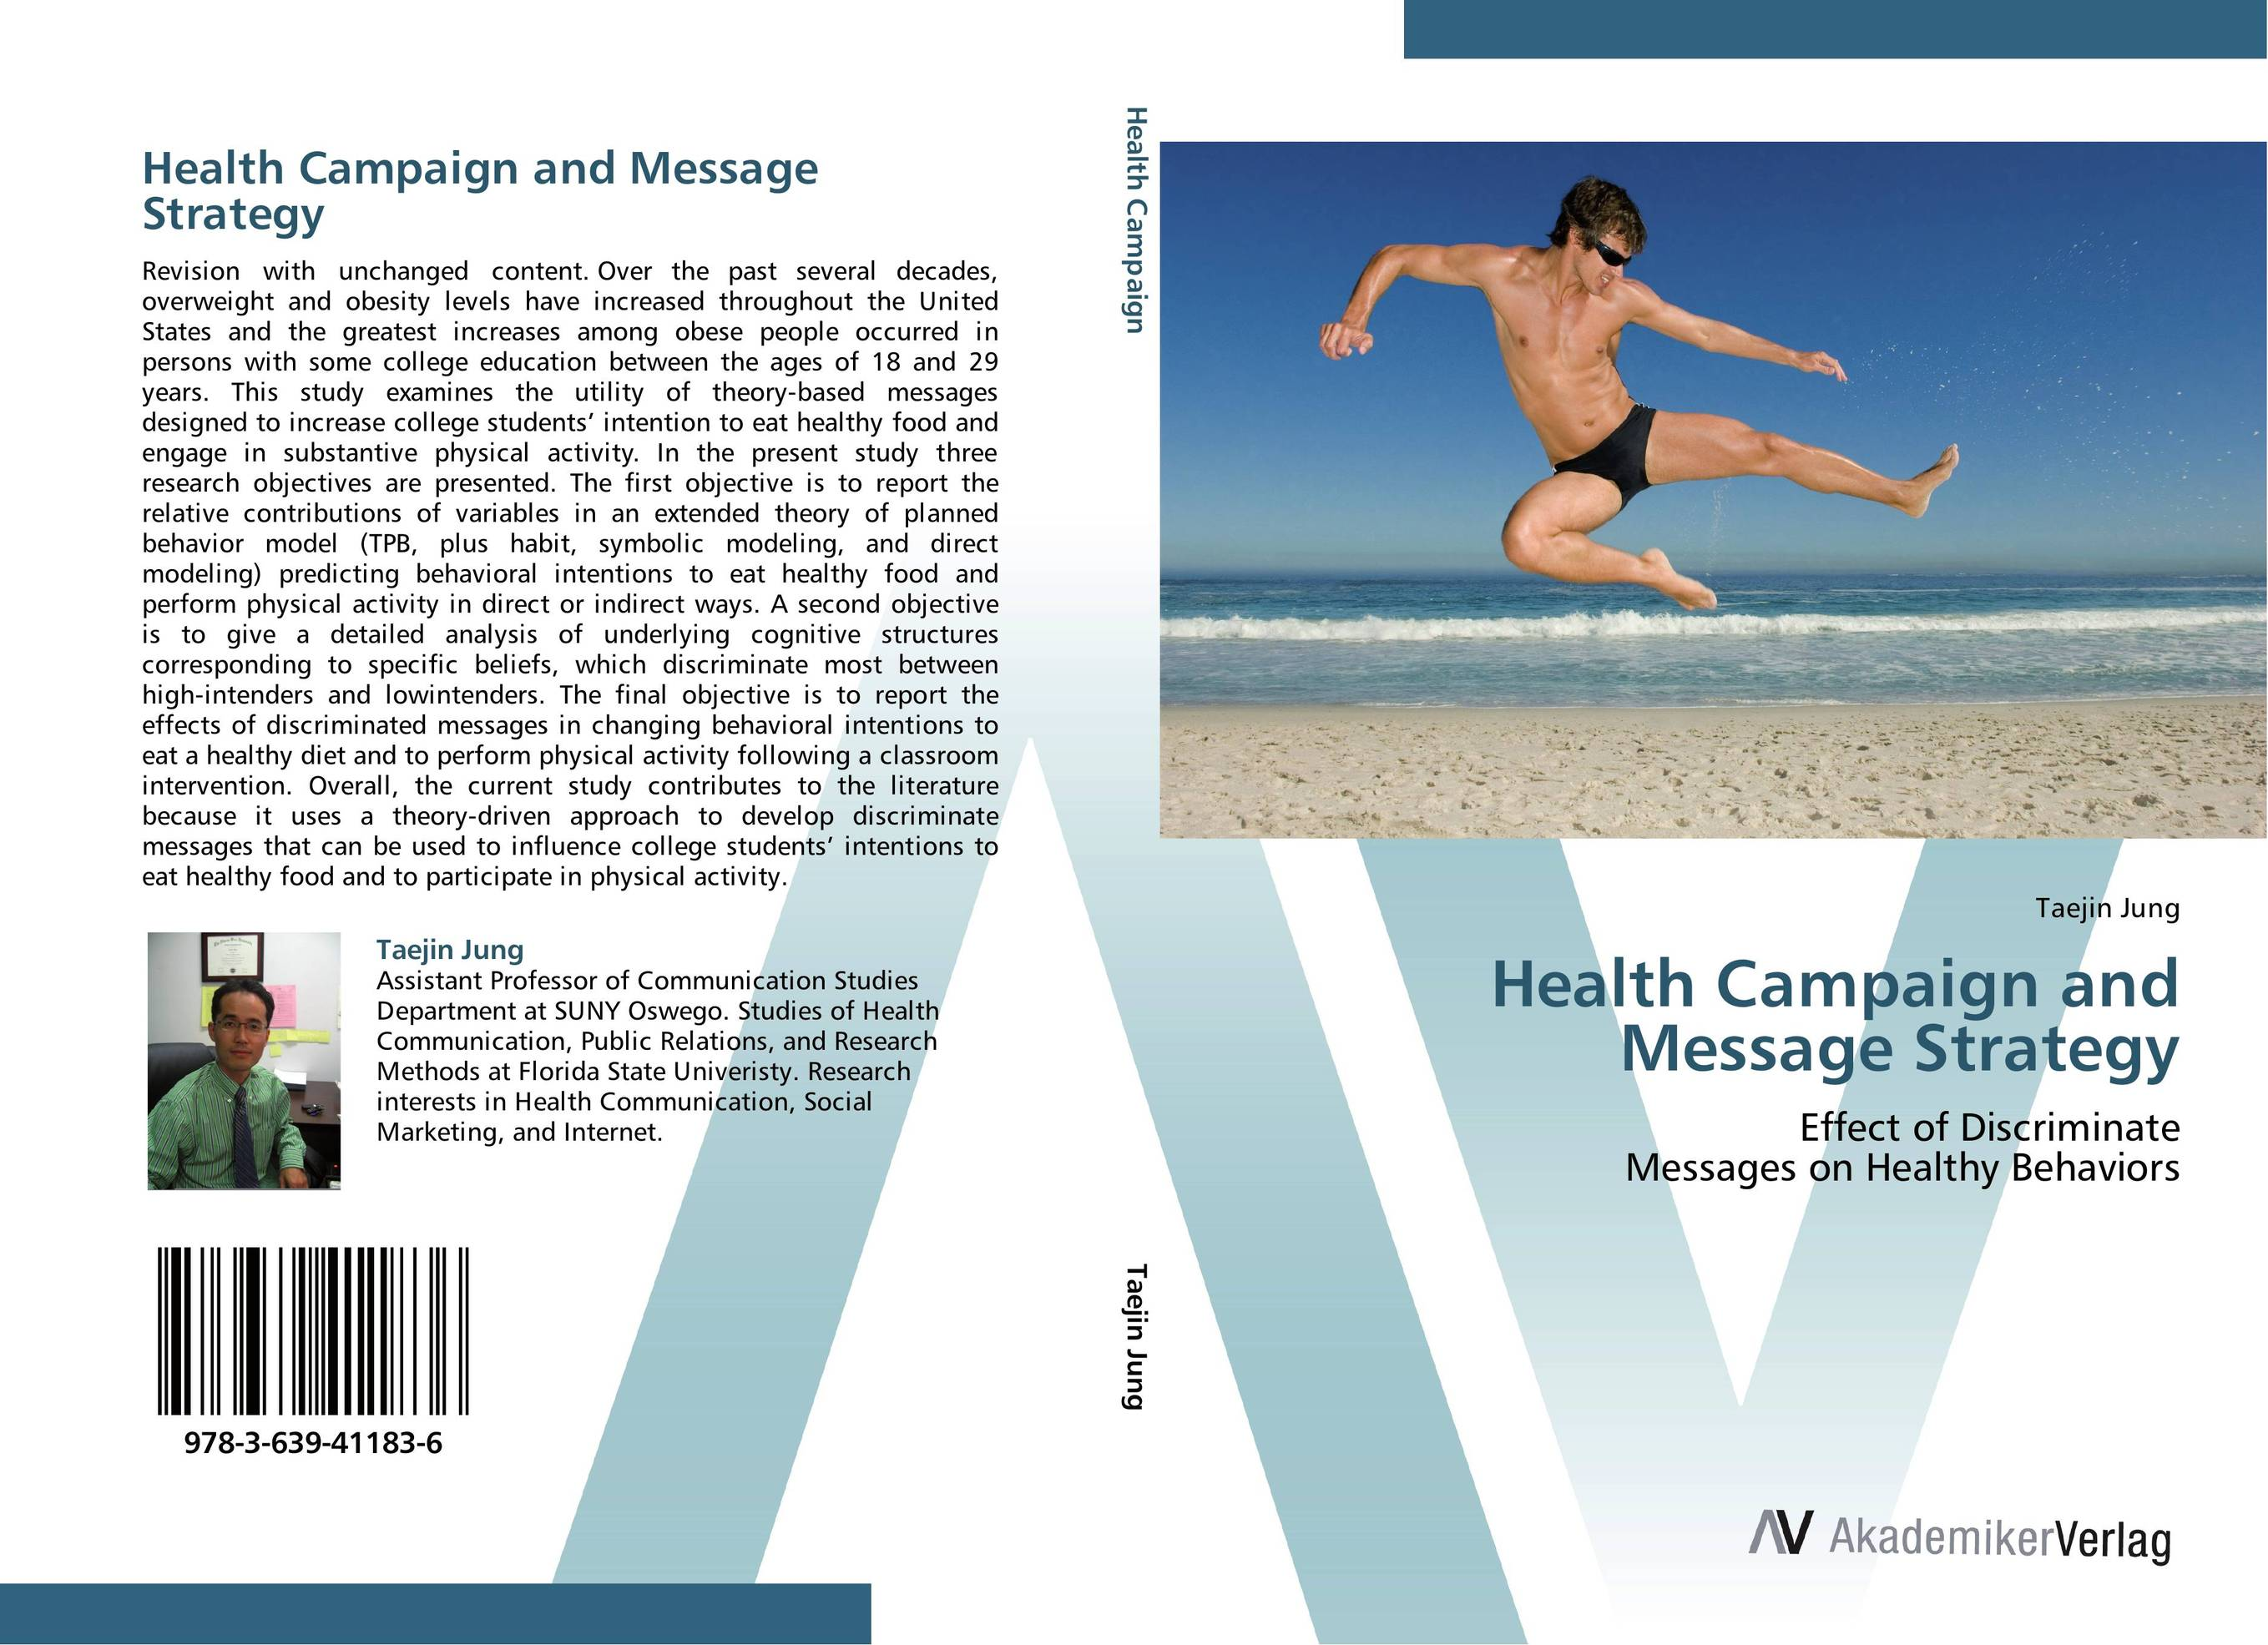 Health Campaign and Message Strategy driven to distraction